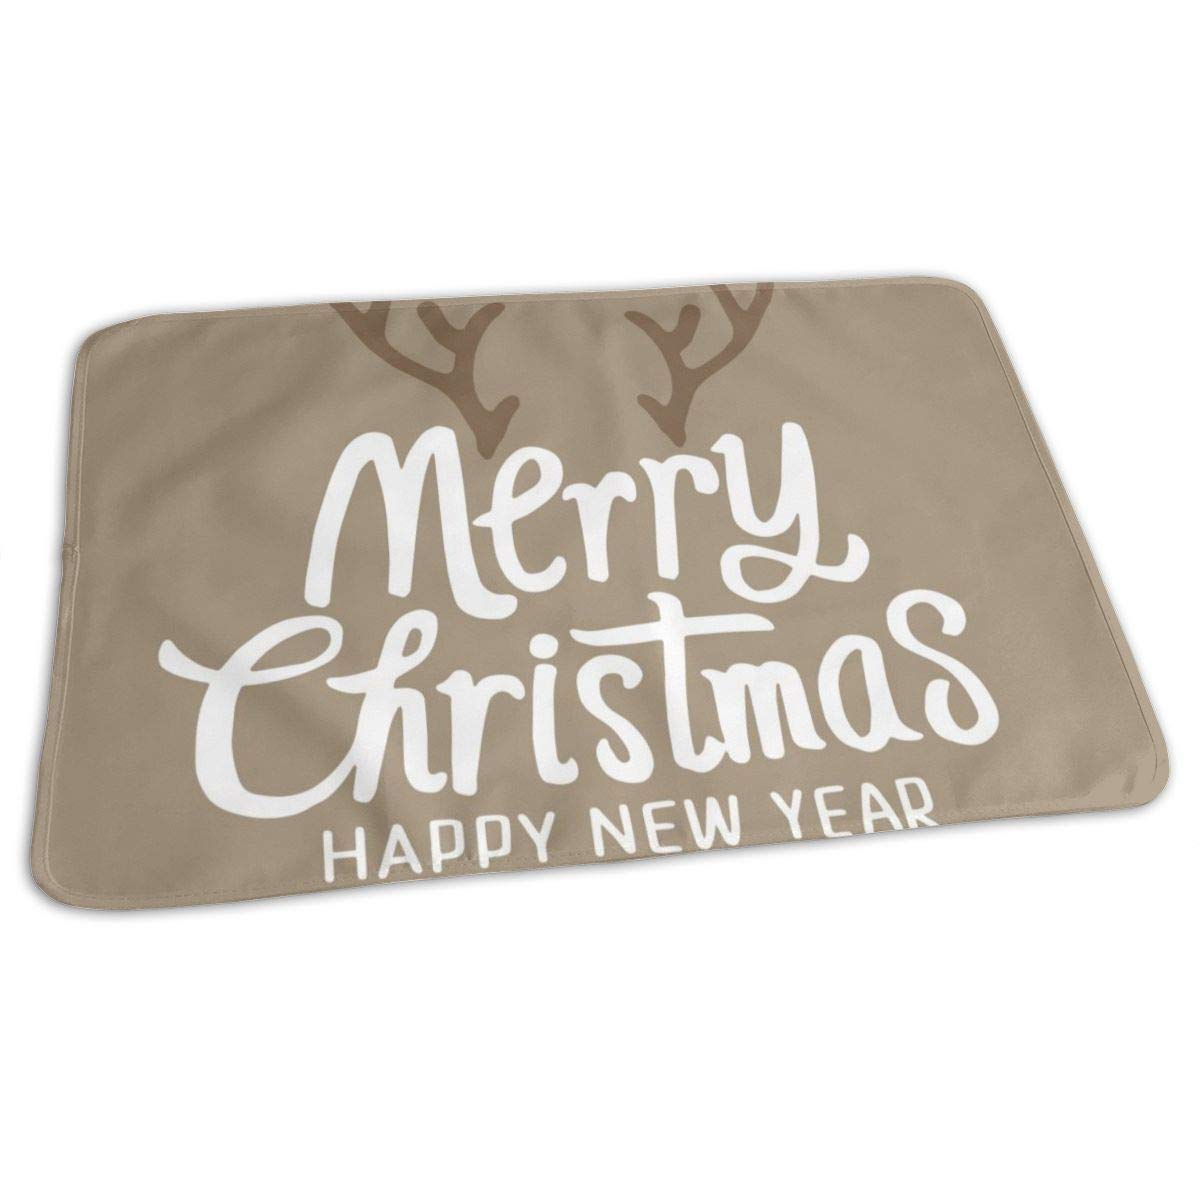 Osvbs Lovely Baby Reusable Waterproof Portable Merry Christmas Typographic Greeting Card Changing Pad Home Travel 27.5''x19.7'' by Osvbs